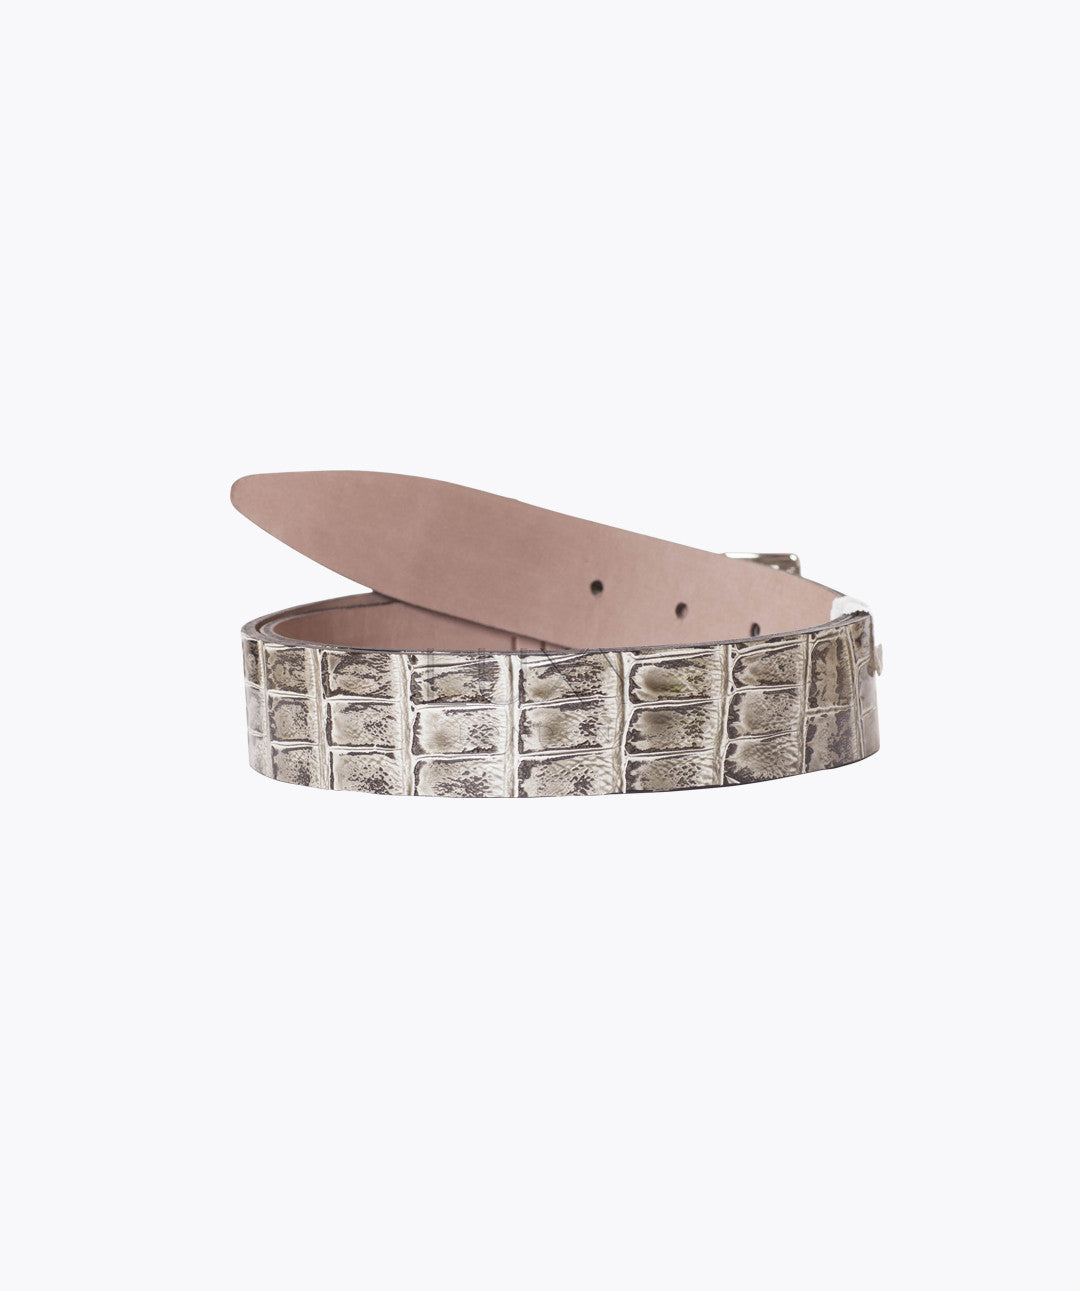 ALLIGATOR LEATHER BELT - MARBLE GREY